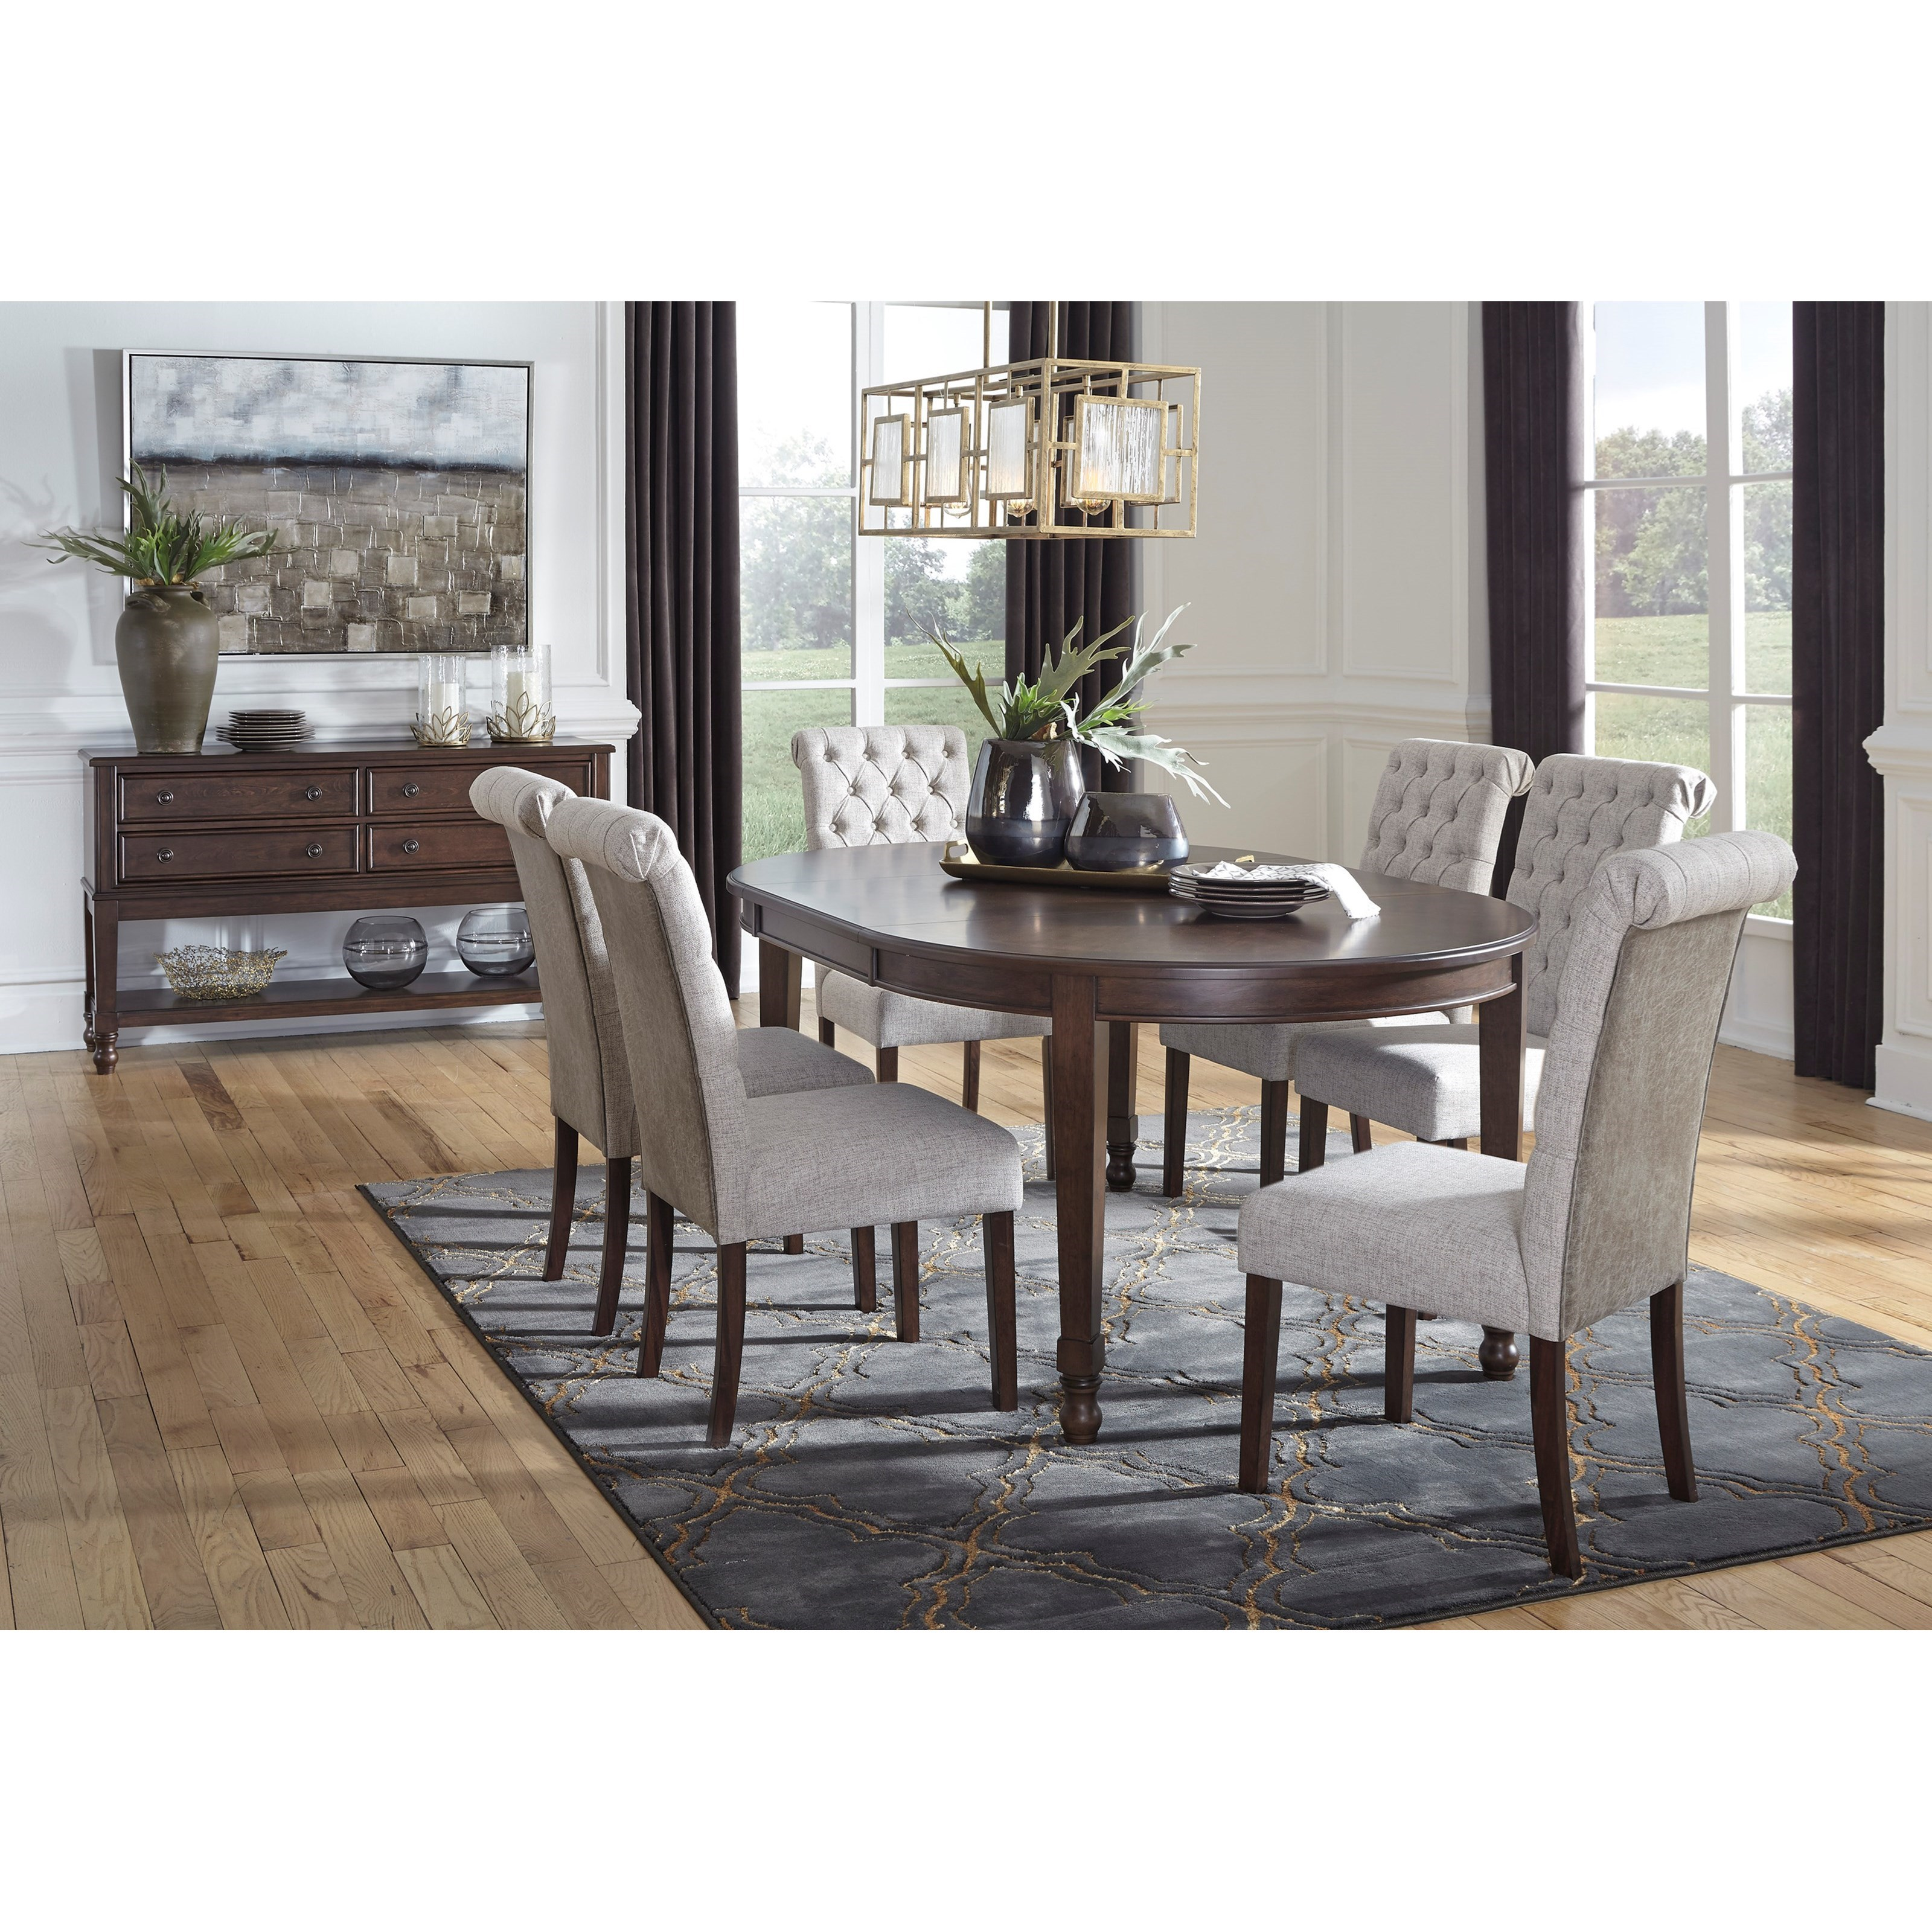 Adinton Formal Dining Room Group by Signature Design by Ashley at Lapeer Furniture & Mattress Center